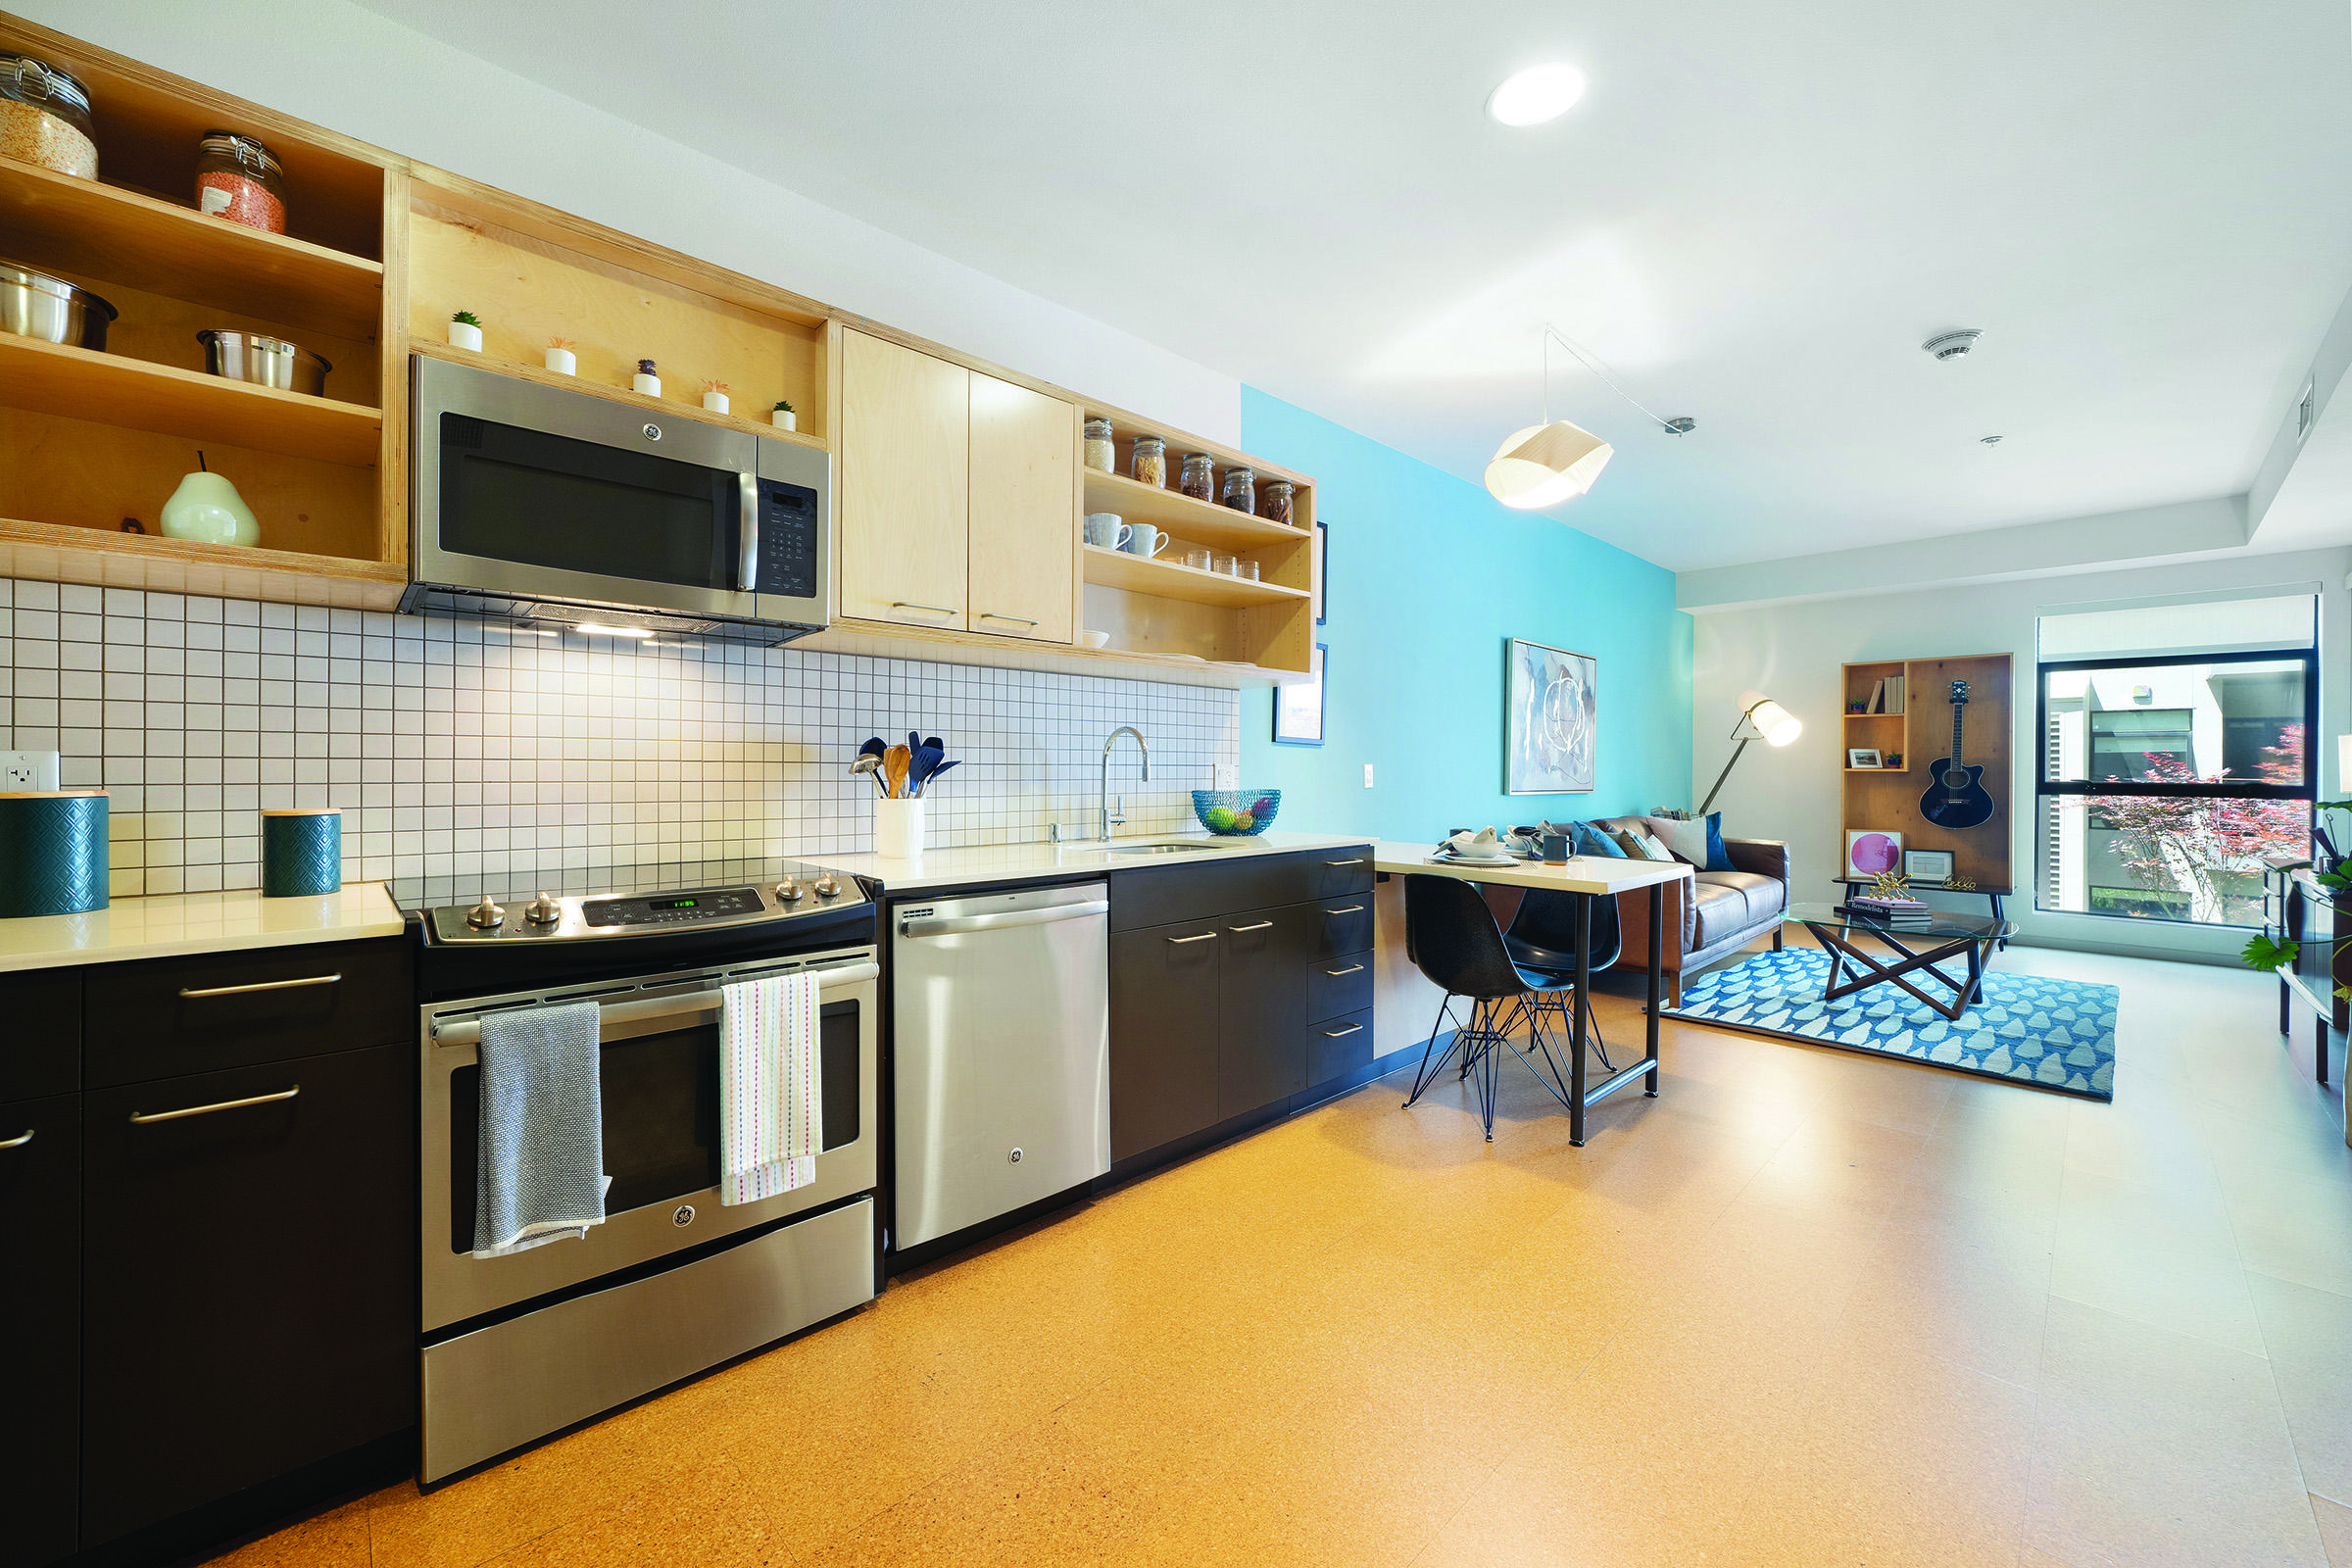 a room filled with furniture and a counter in a kitchen